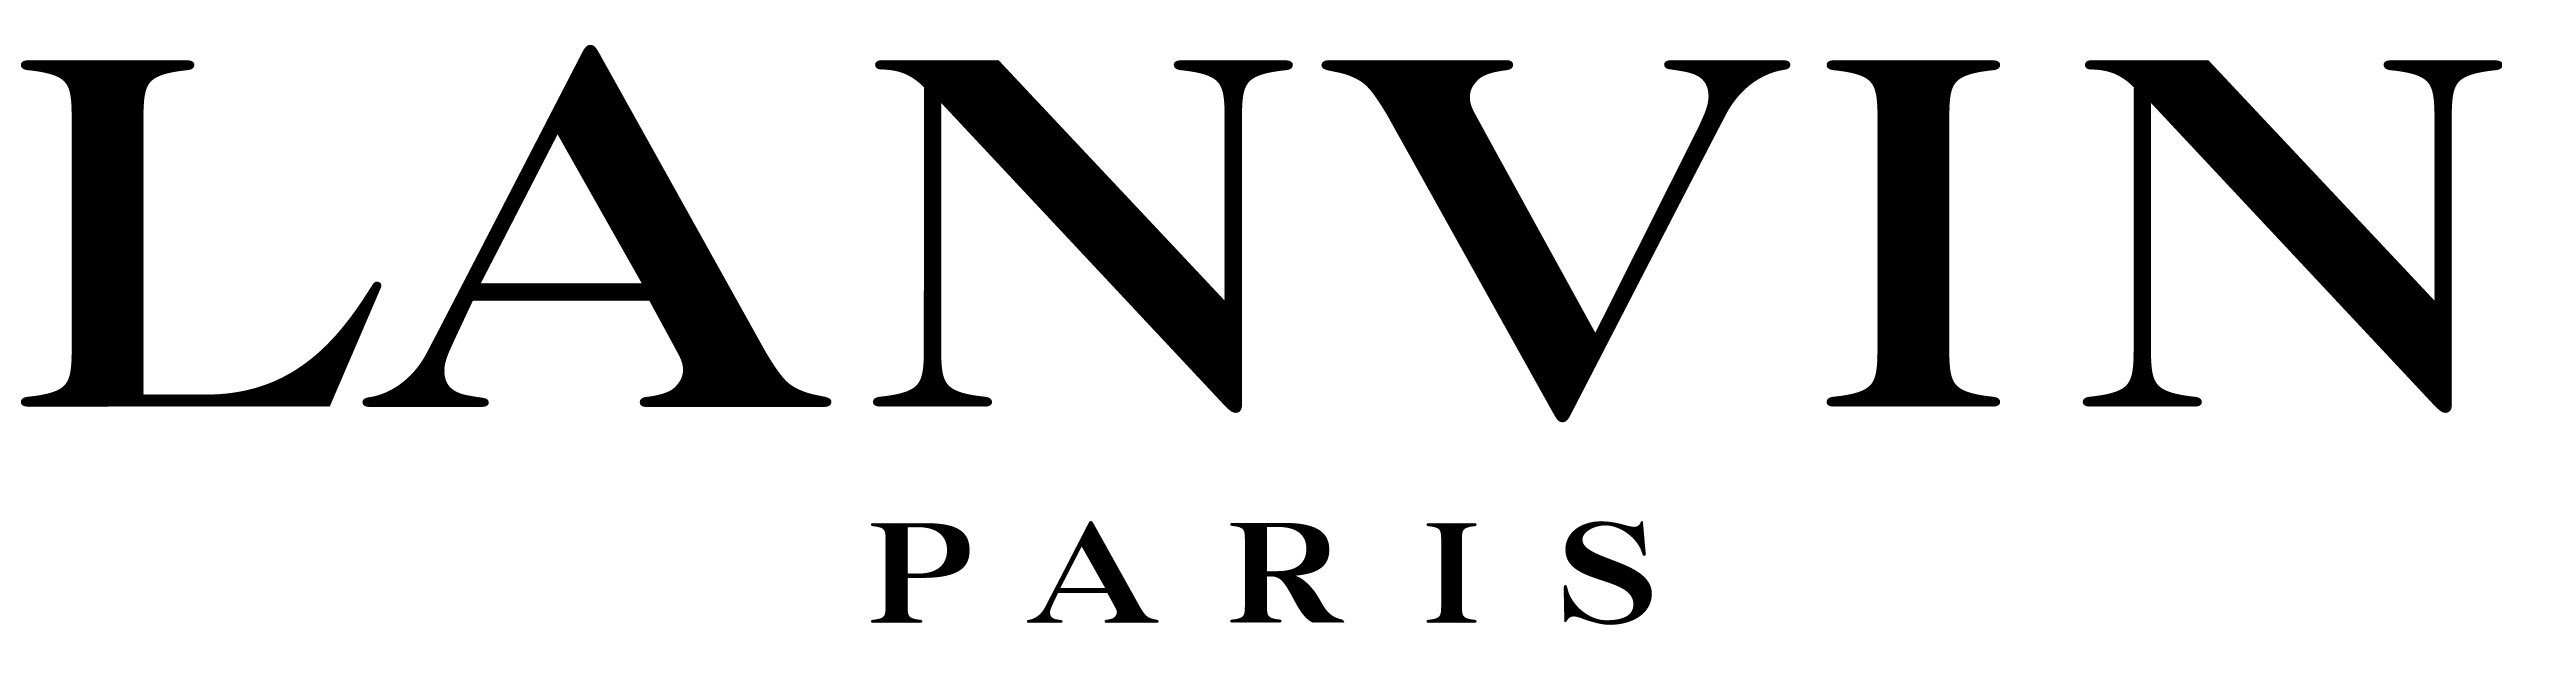 Lanvin – Logos Download